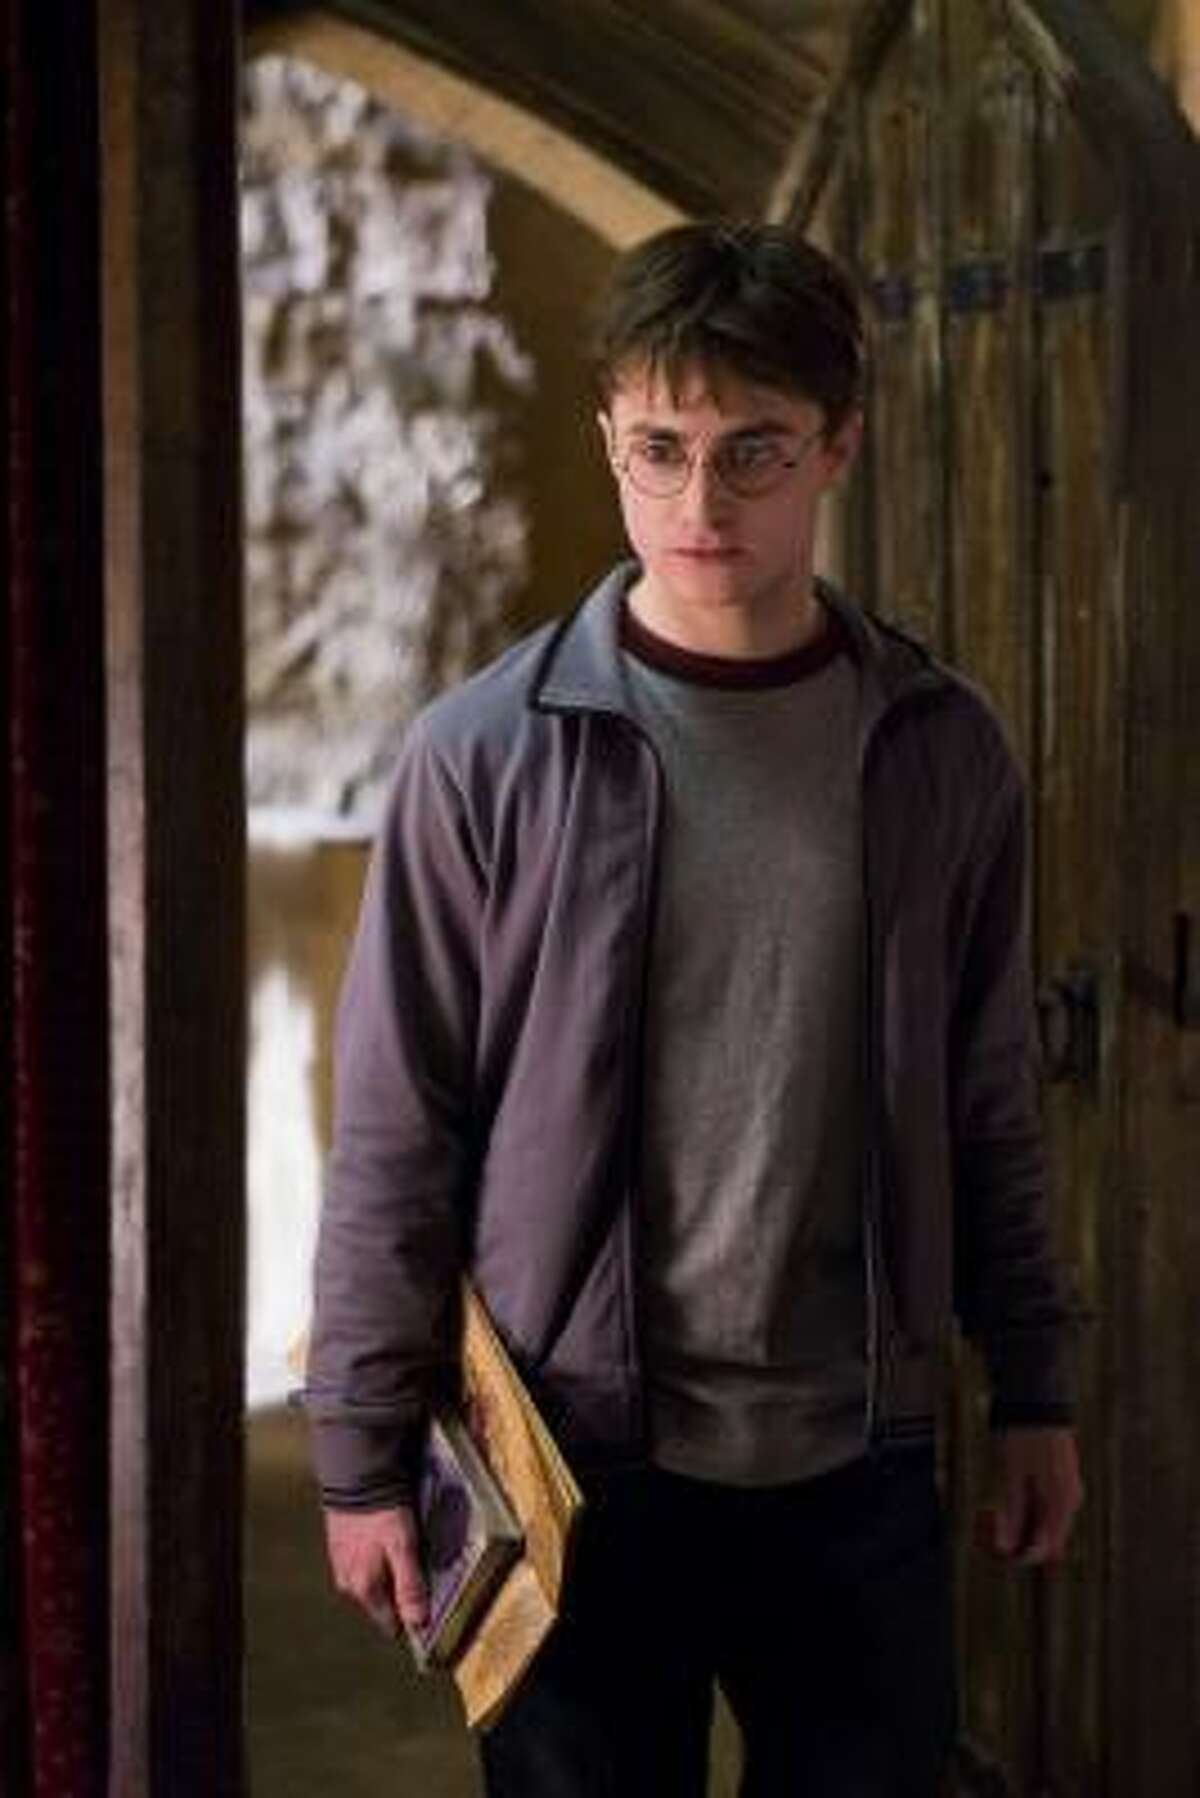 Harry Potter and the Half-Blood Prince was bumped down to the No. 2 spot this week. Brining in $30 million.